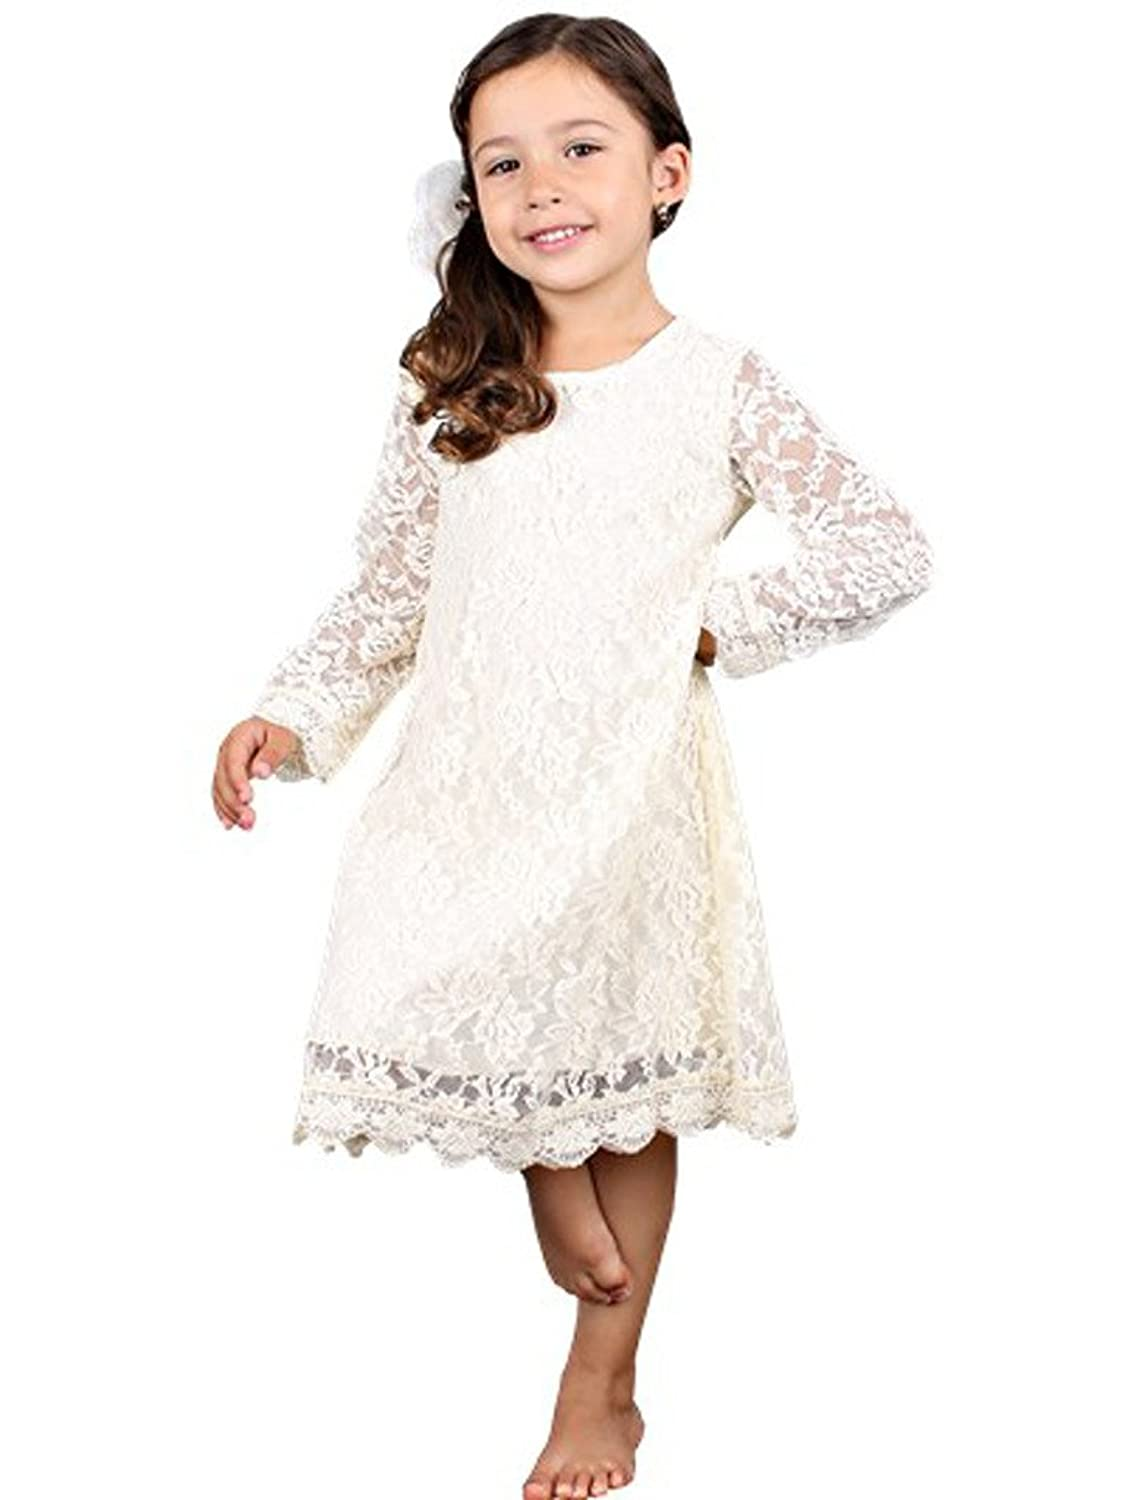 Vintage Style Children's Clothing: Girls, Boys, Baby, Toddler Bow Dream Flower Girls Dress $22.99 AT vintagedancer.com